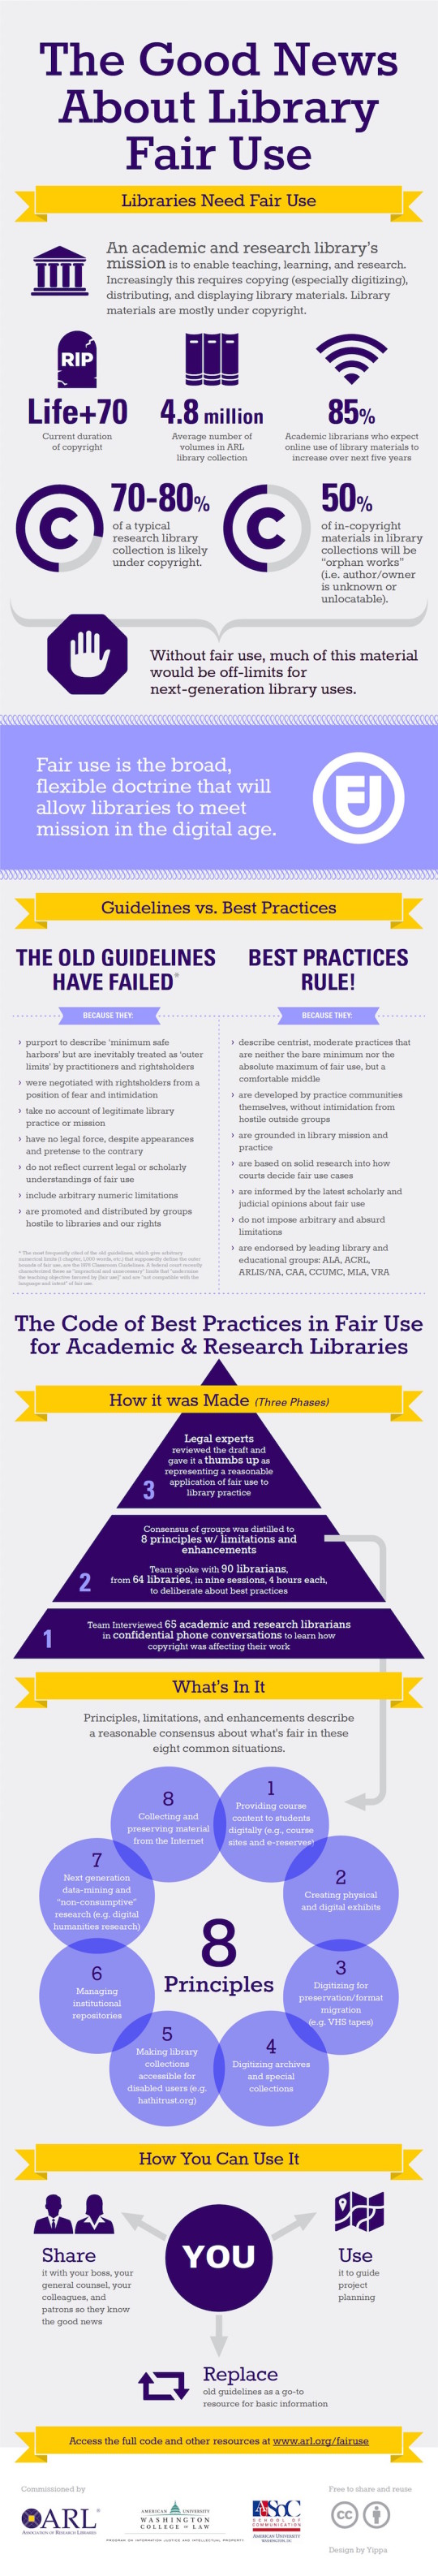 Why libraries need Fair Use - infographic